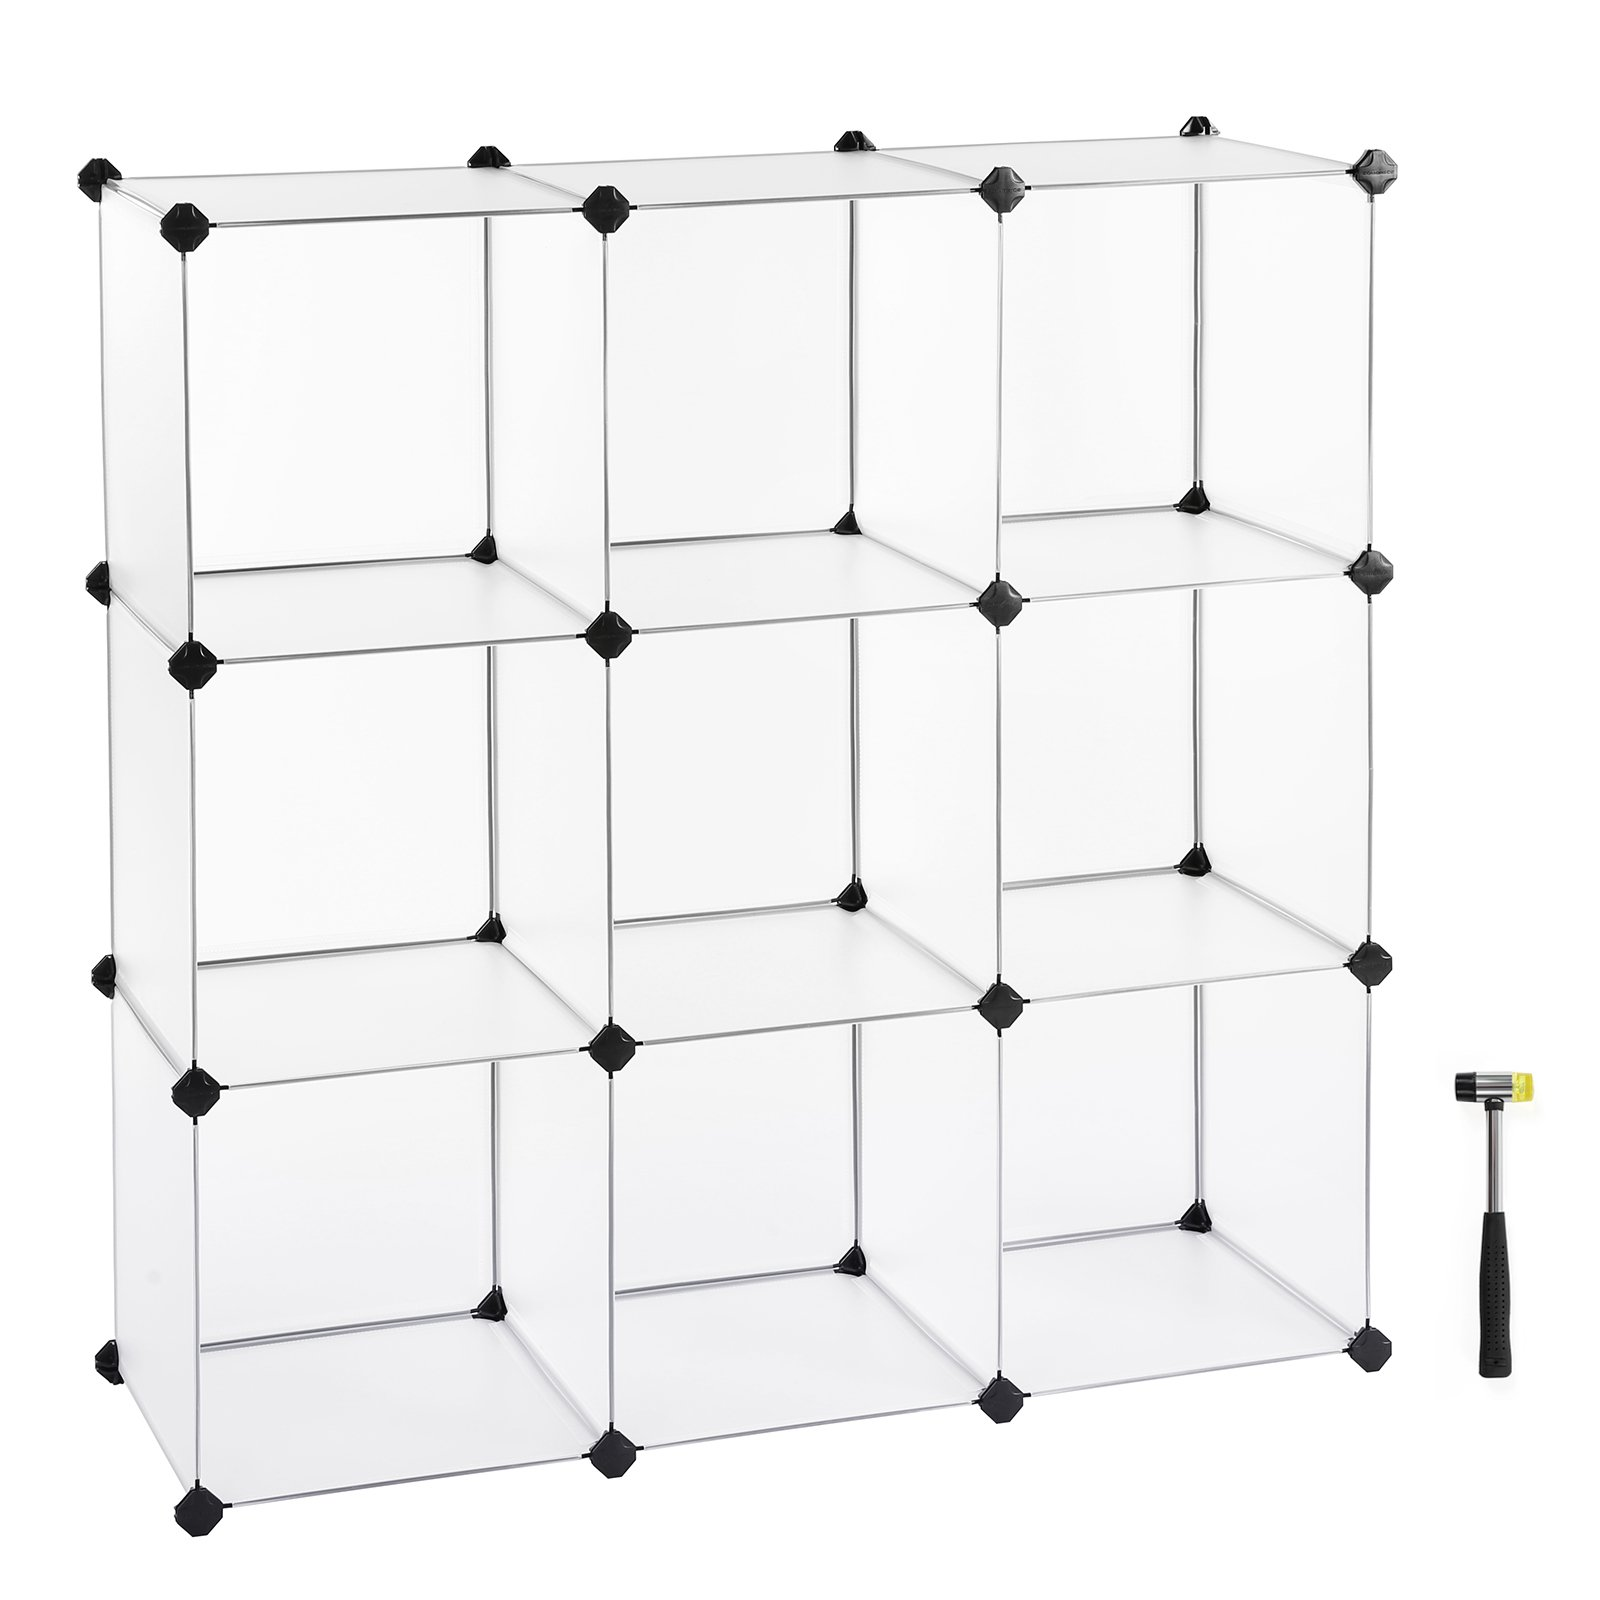 SONGMICS Cube Storage, DIY Plastic Cube Organizer Units, Modular Closet Cabinet for Clothes, Shoes, Toys, Book for Bedroom, Living Room, Office, White 9-Cube ULPC33W